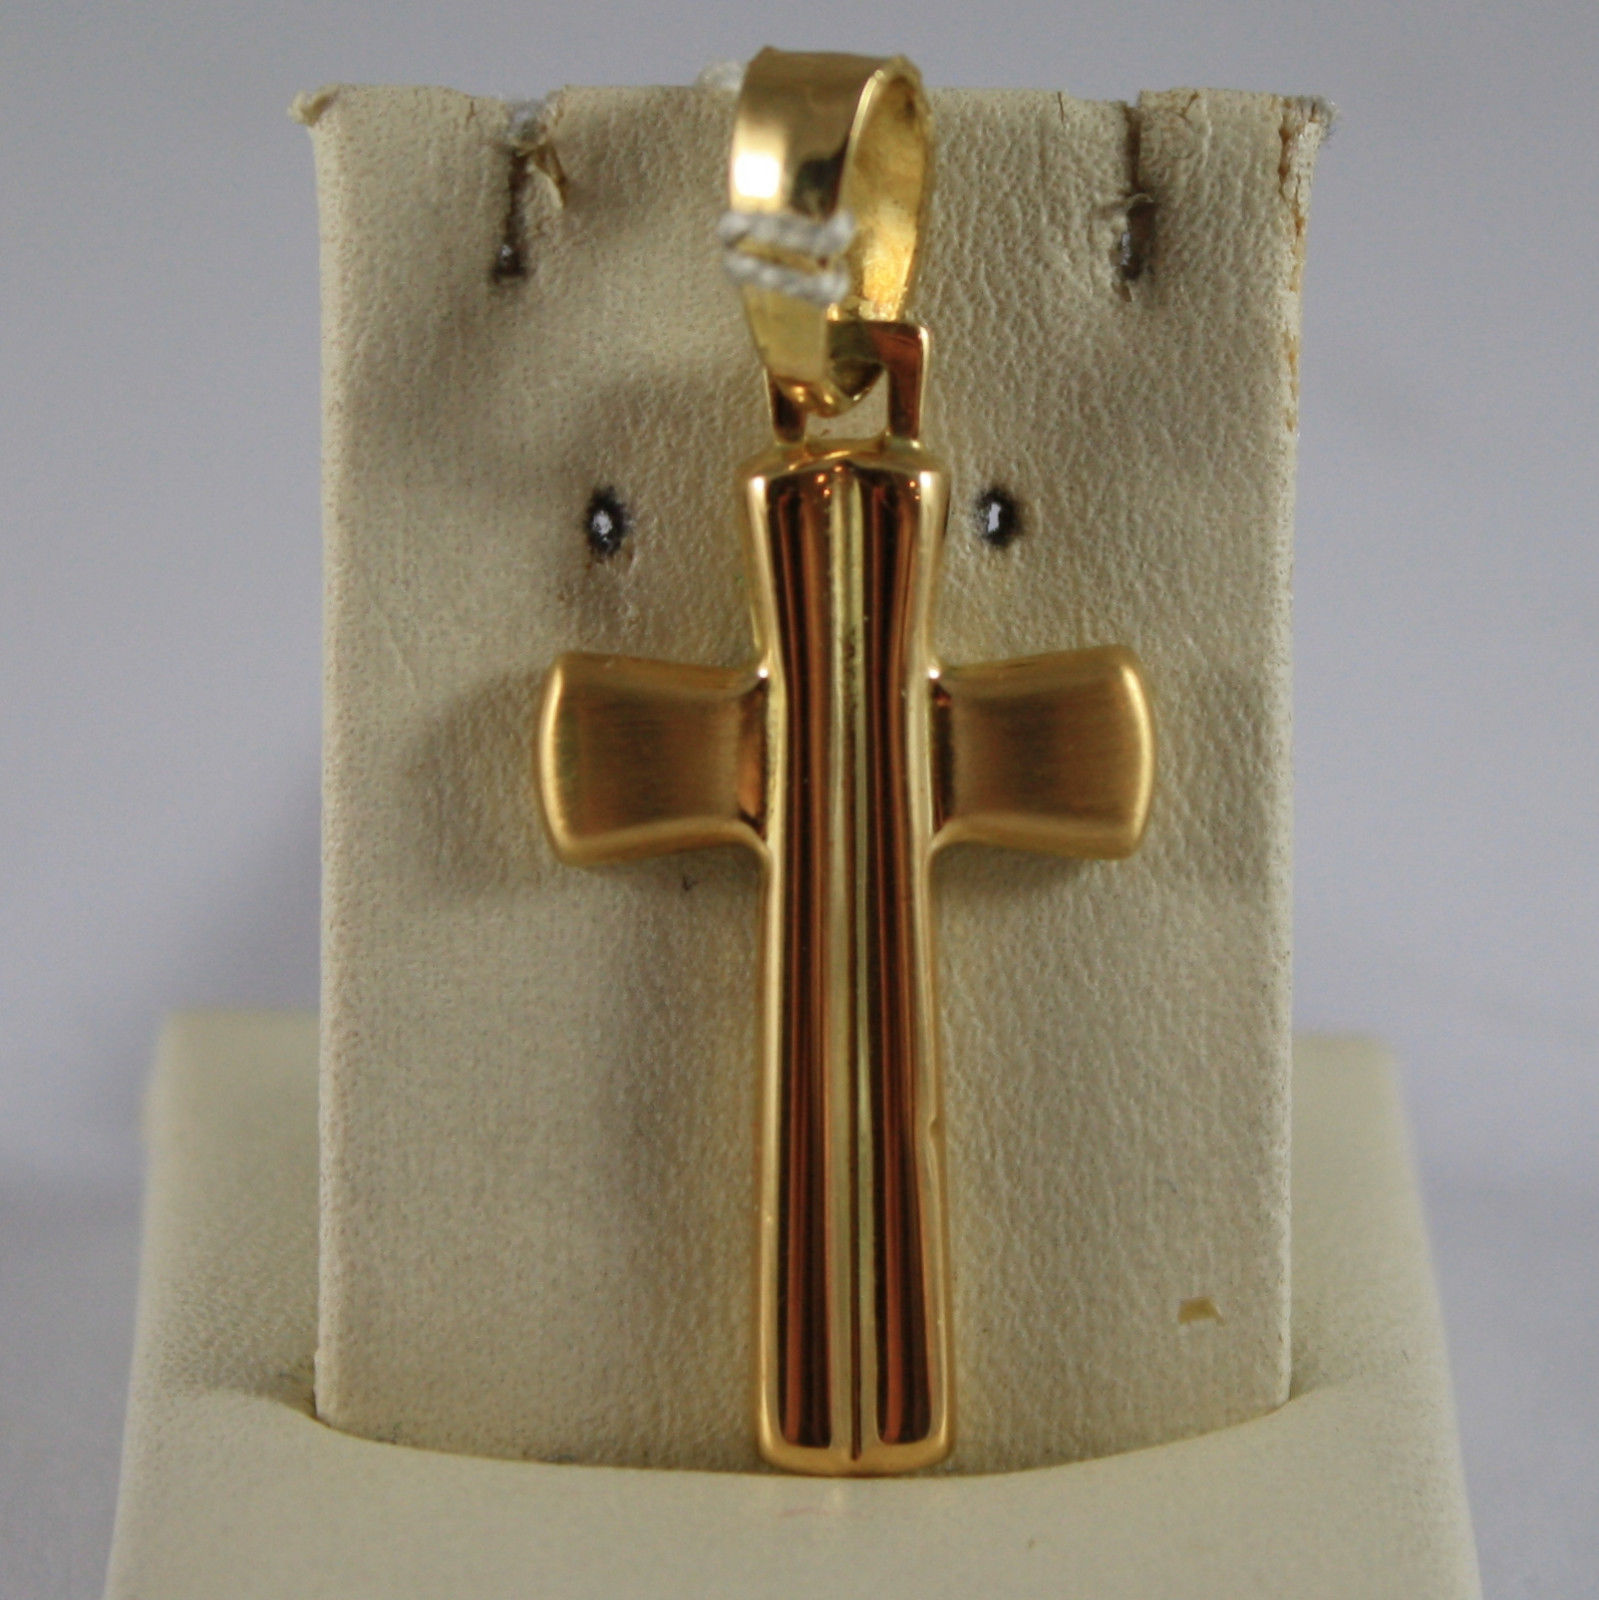 SOLID 18K YELLOW GOLD CROSS PENDANT, LENGTH 1,38 IN MADE IN ITALY